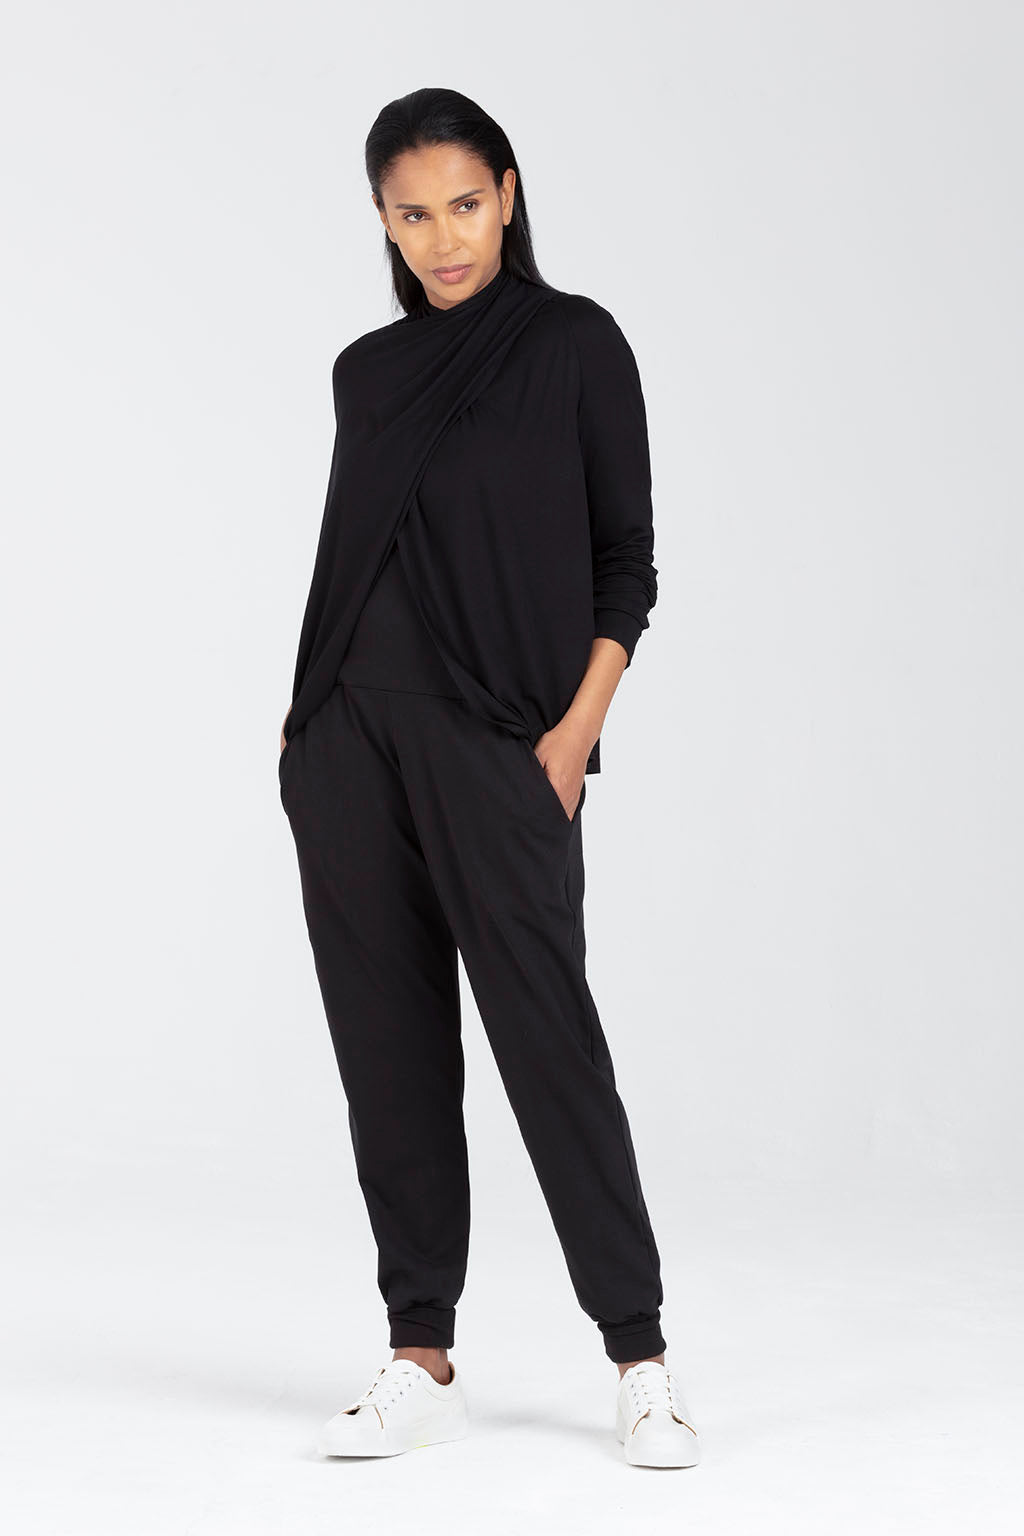 Postnatal C Section Trousers in Black | Ada by Sarka London - Front View